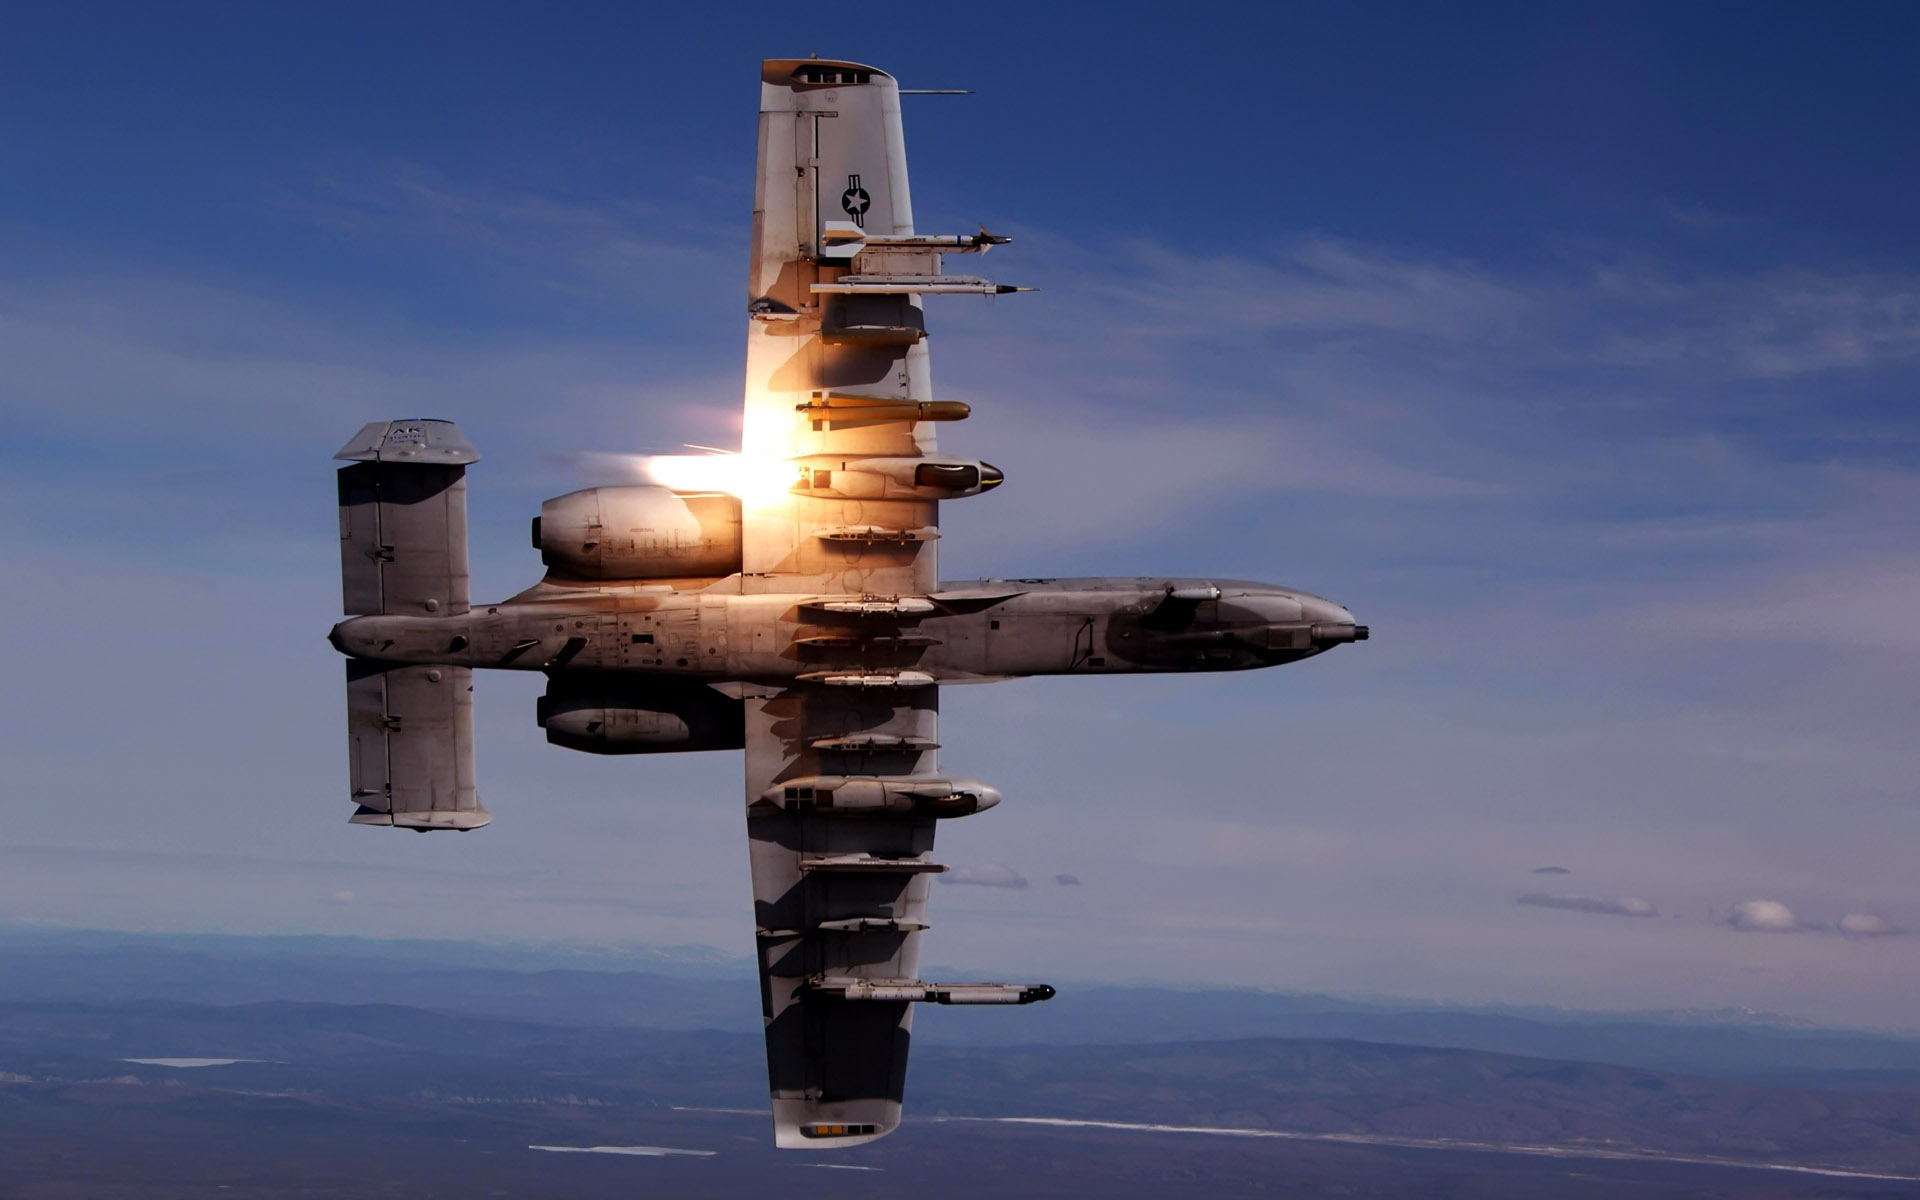 A 10 Thunderbolt II During Live Fire Training 168.59 Kb